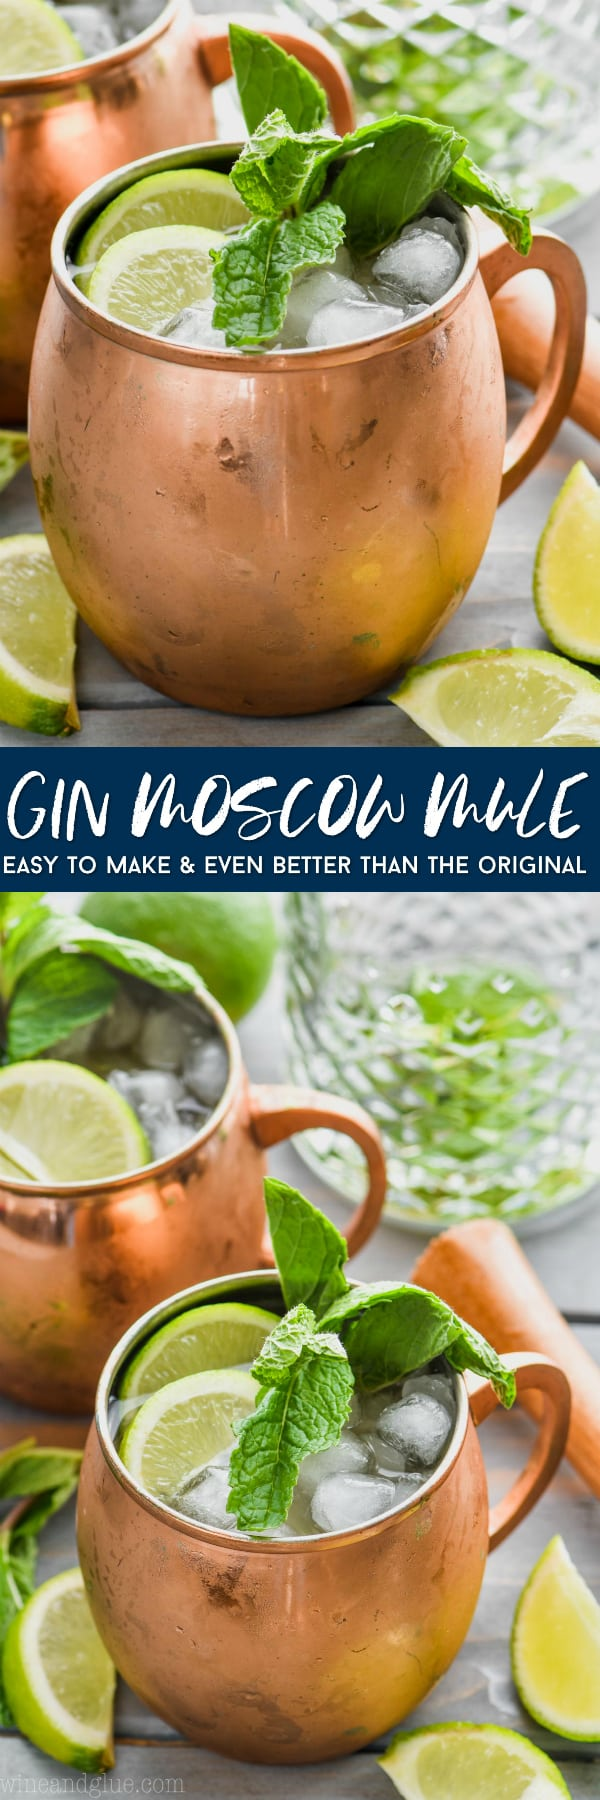 moscow mule with gin in copper mug garnished with mint and lime